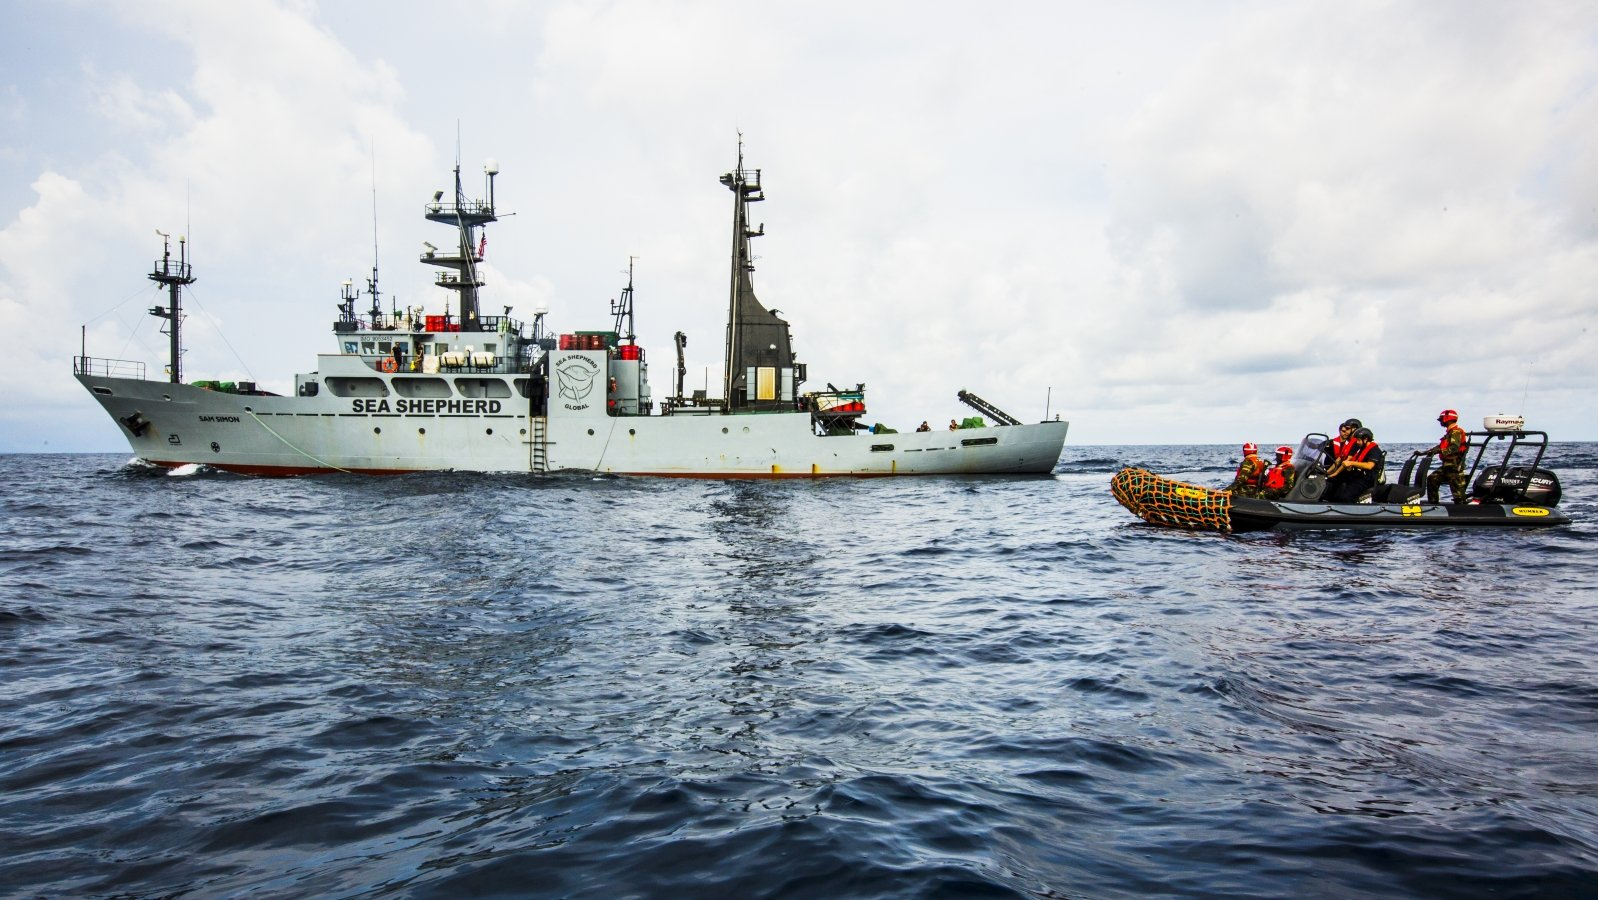 Foreign Industrial Trawler Arrested as Sea Shepherd Launches Renewed Partnership with Liberia